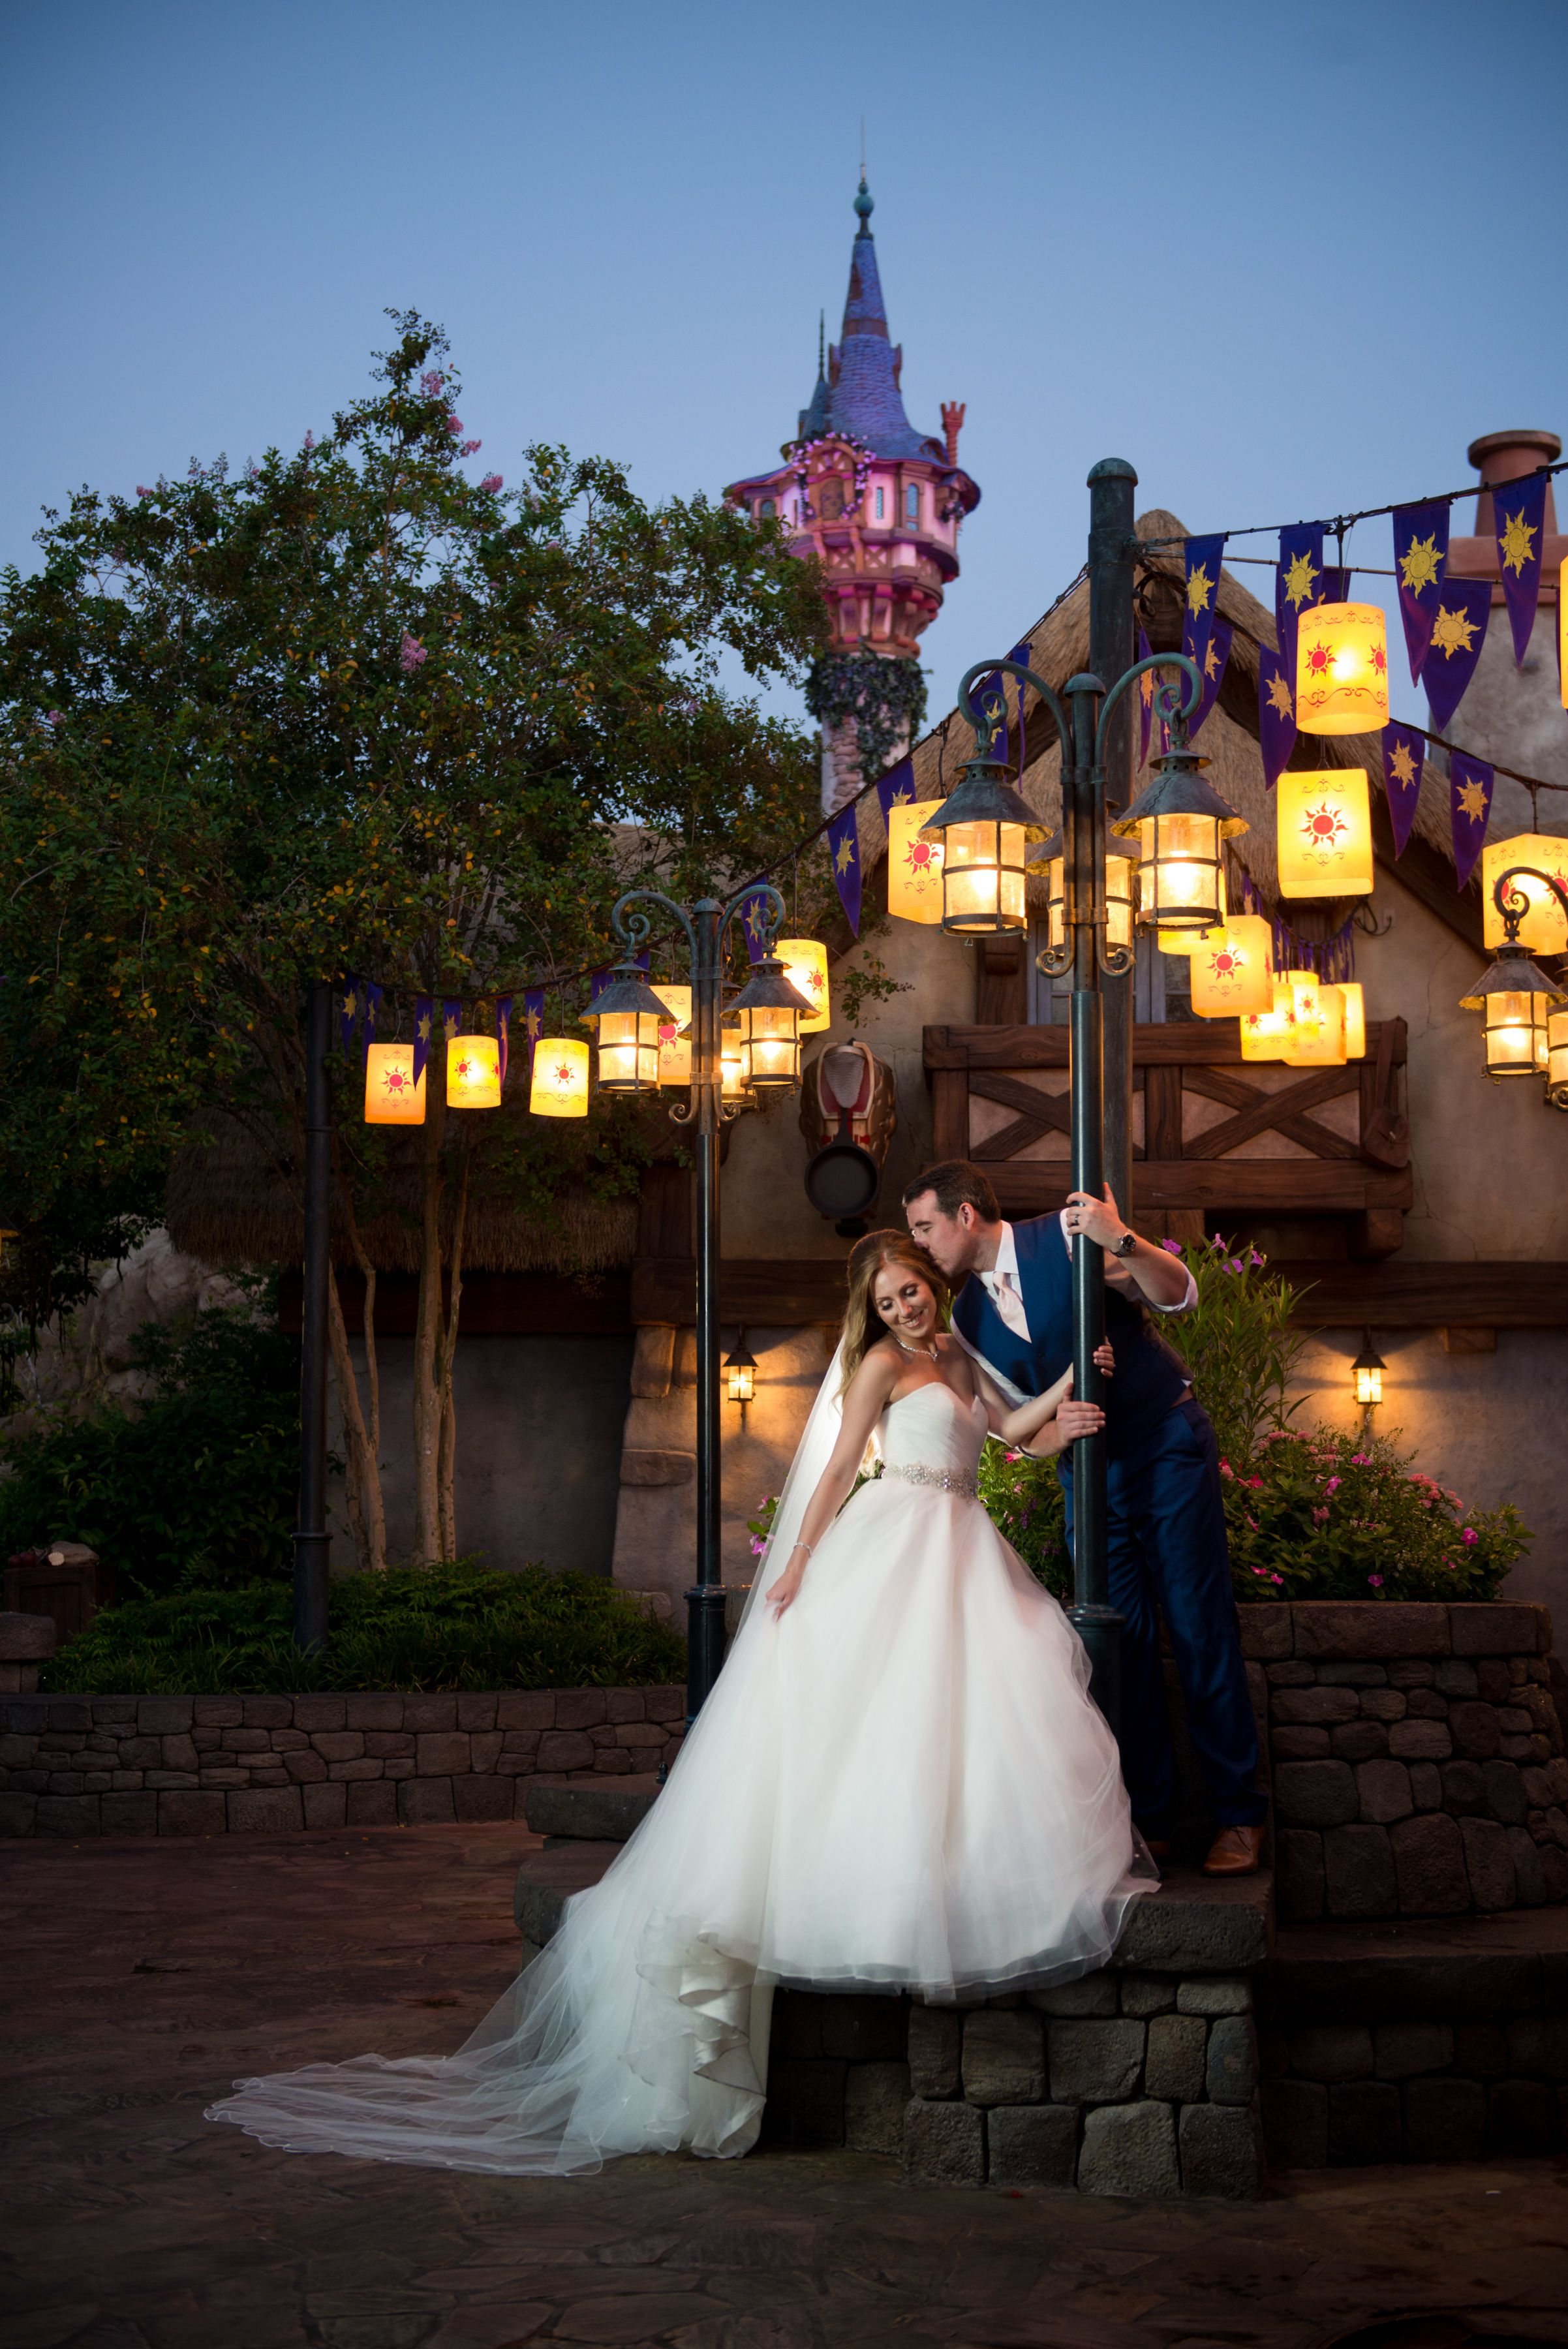 Early Morning Tangled Wedding Portrait At The Magic Kingdom Photo Beth Disney Disney Fairy Tale Weddings Tangled Wedding Disney World Wedding